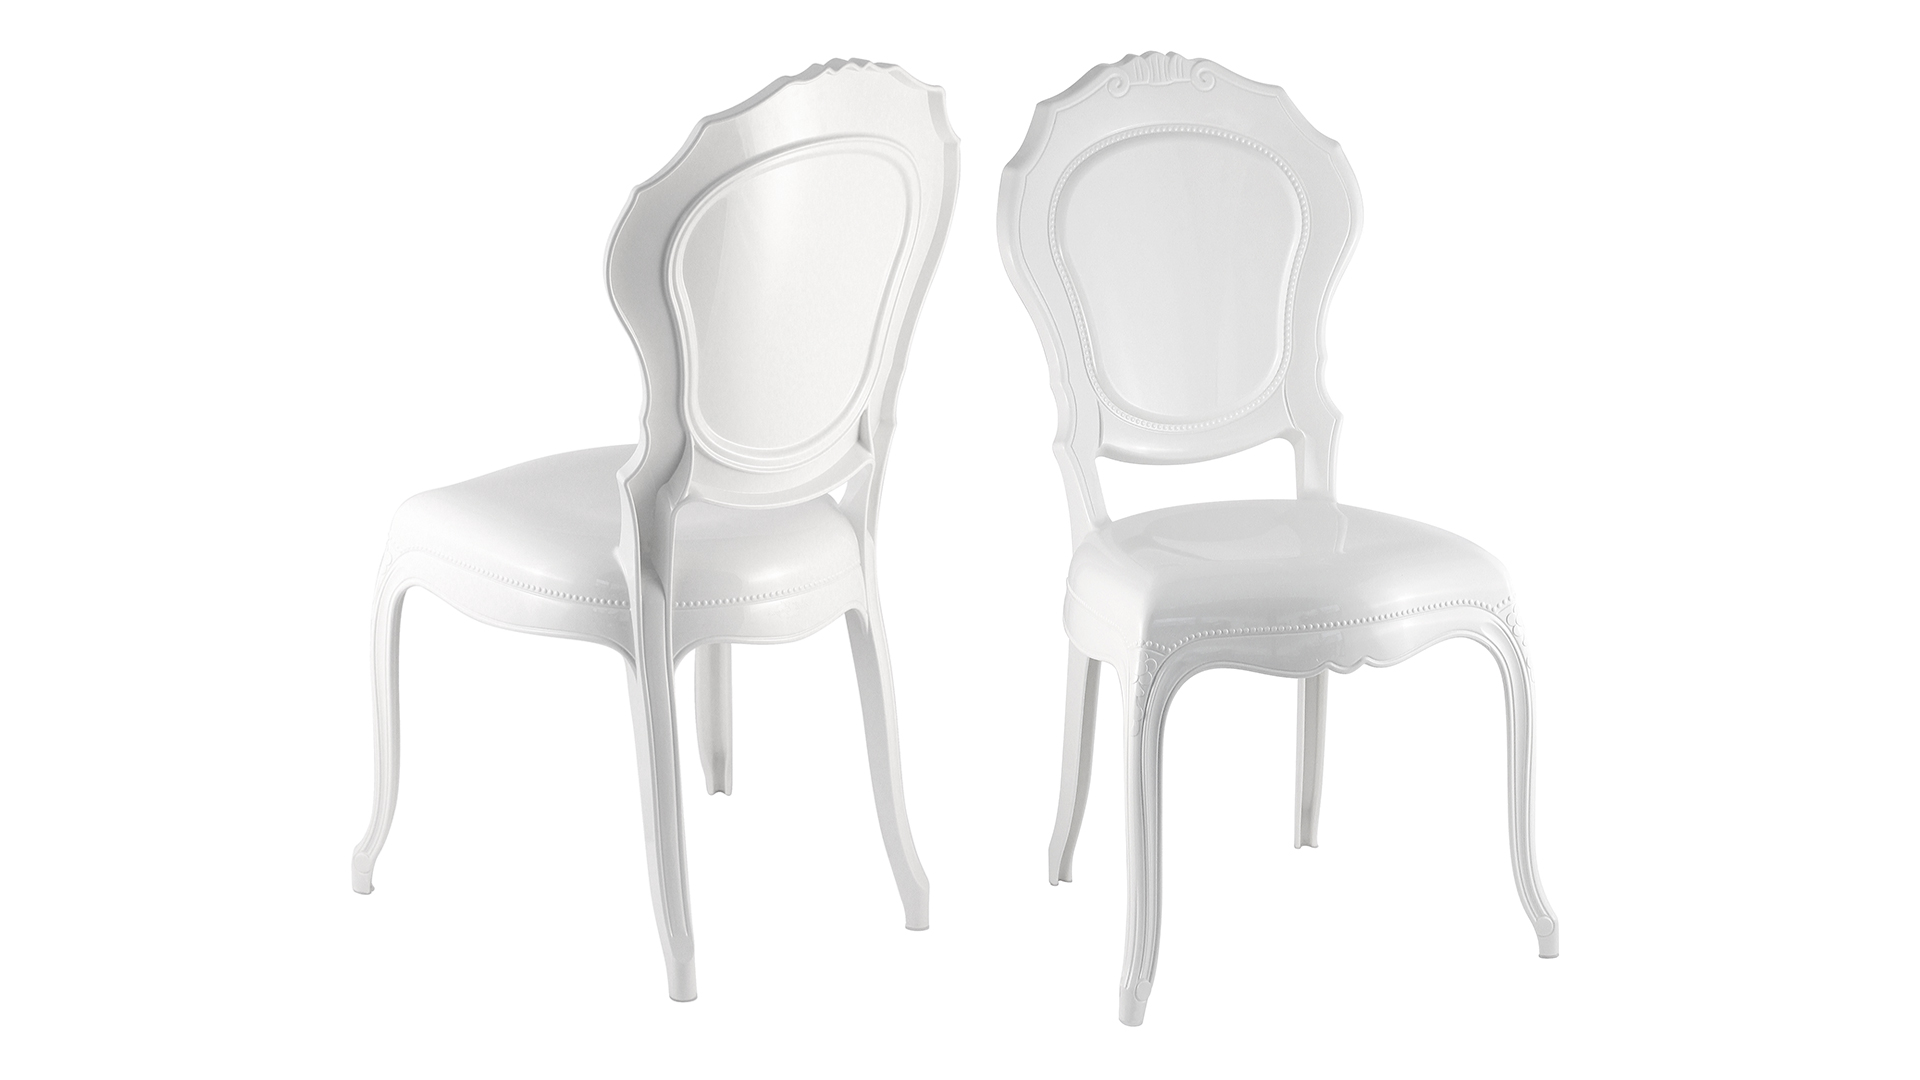 Chaises Medaillon Plexiglas Plexiglas Blanc Opaque Fabulous Matriel Novelty Pupitre